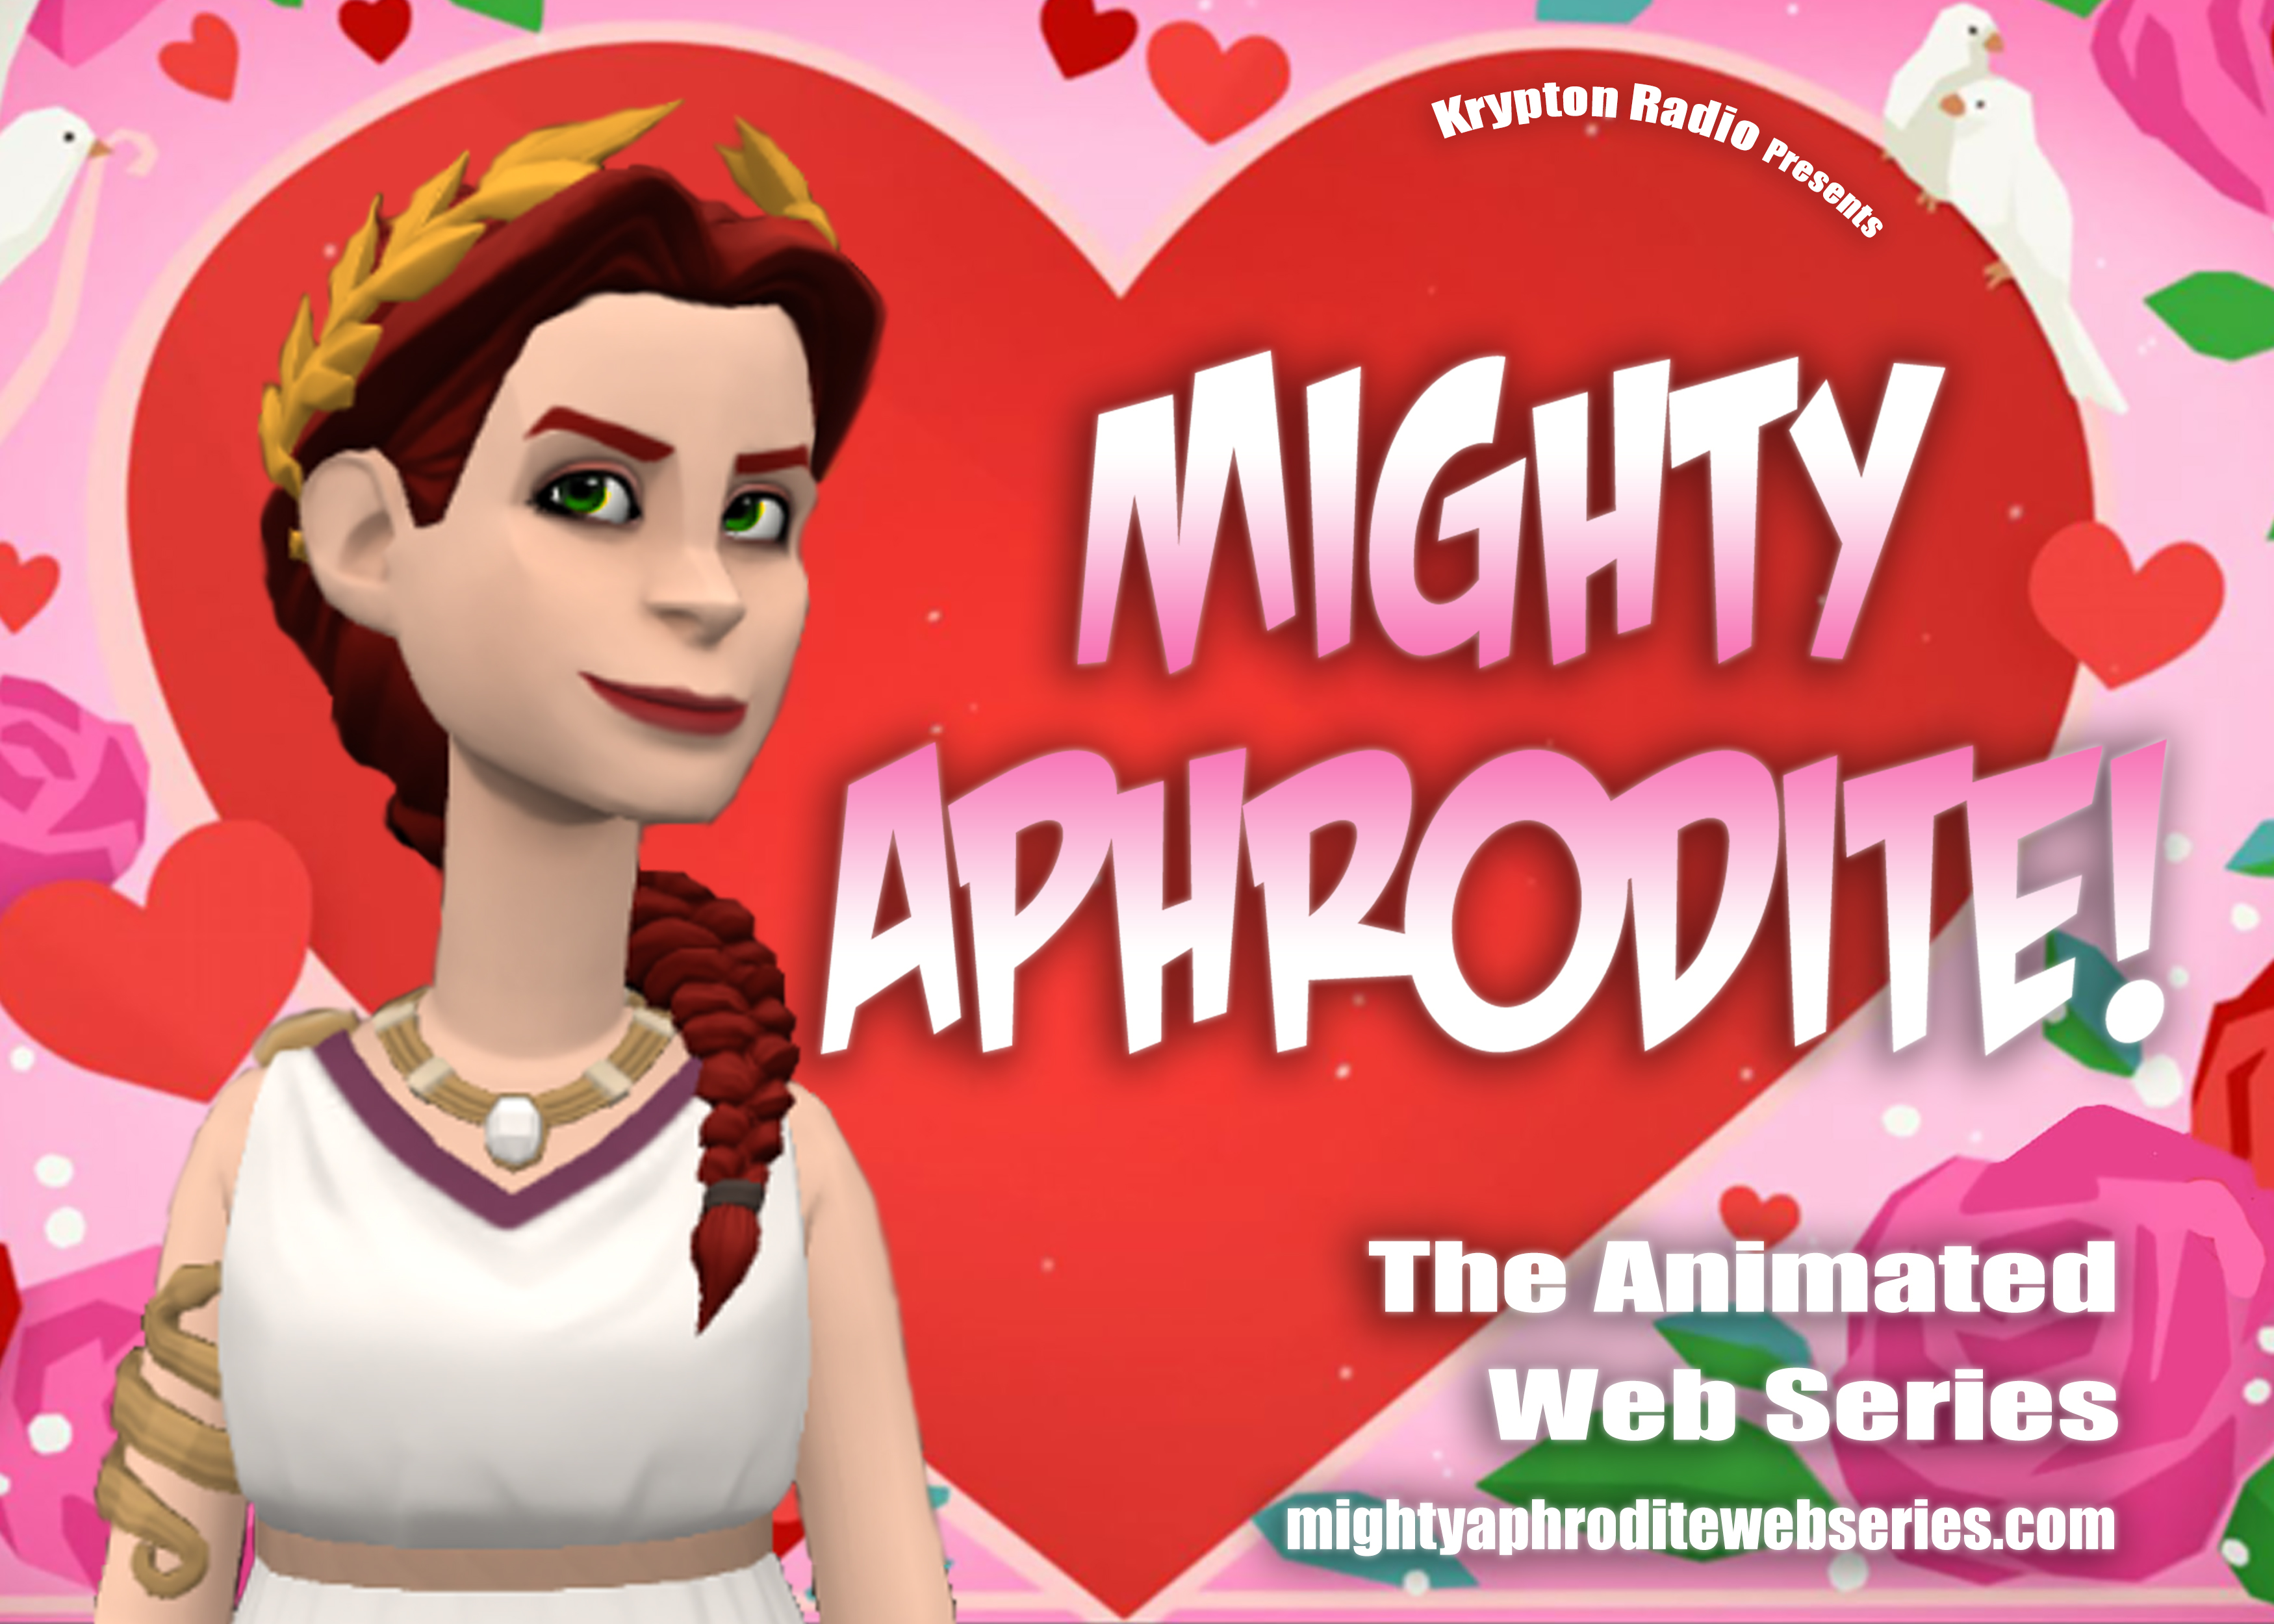 Mighty Aphrodite! The Web Series